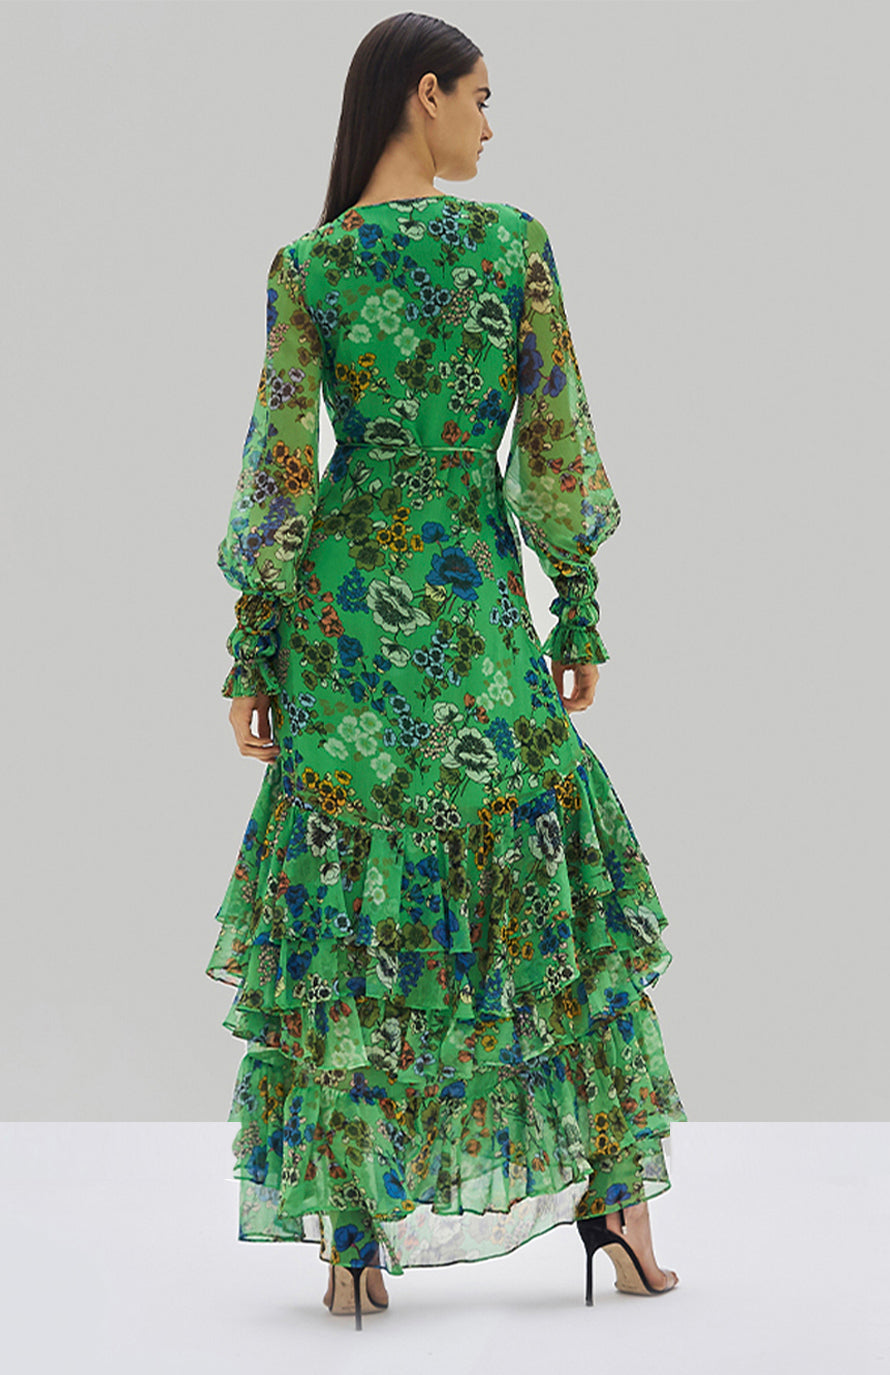 Alexis Solace Dress Eden Floral Green - Rear View